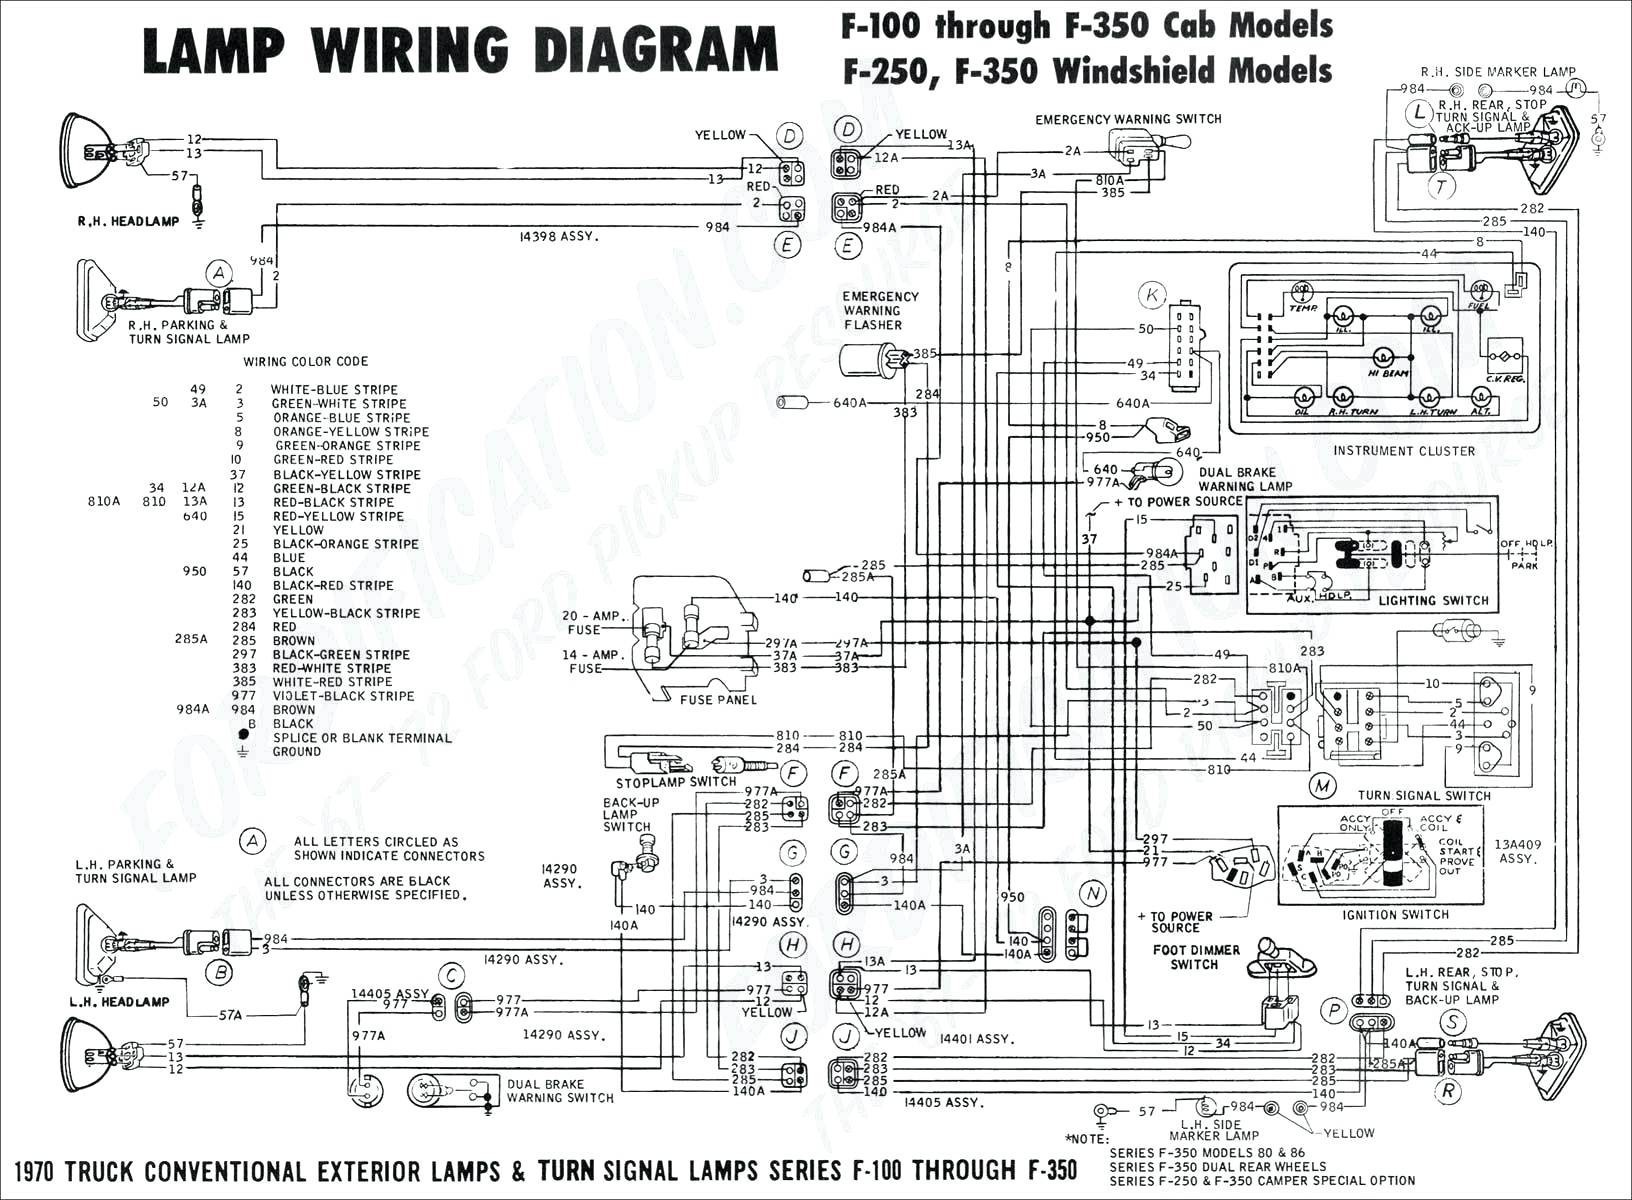 2003 vw jetta tail light wiring diagram clarion vx401 chevy silverado brake